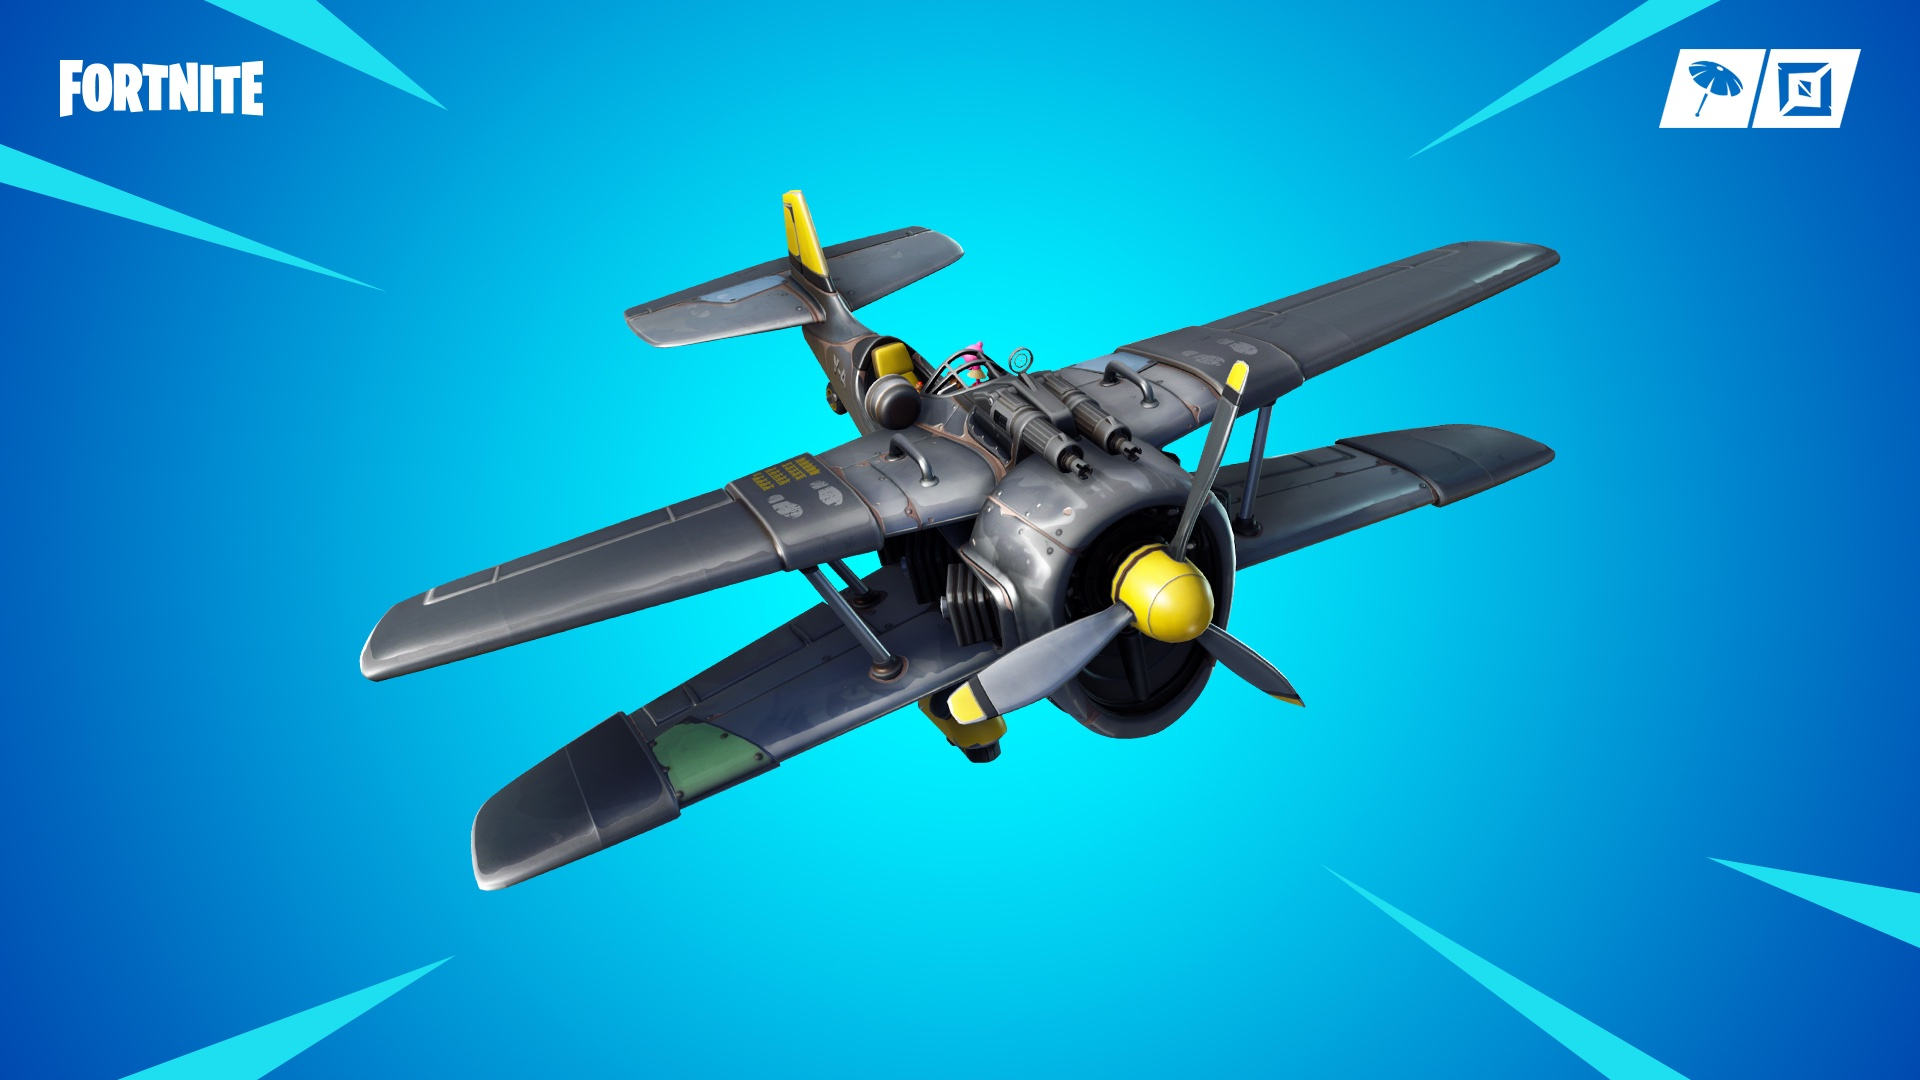 Fortnite avioneta